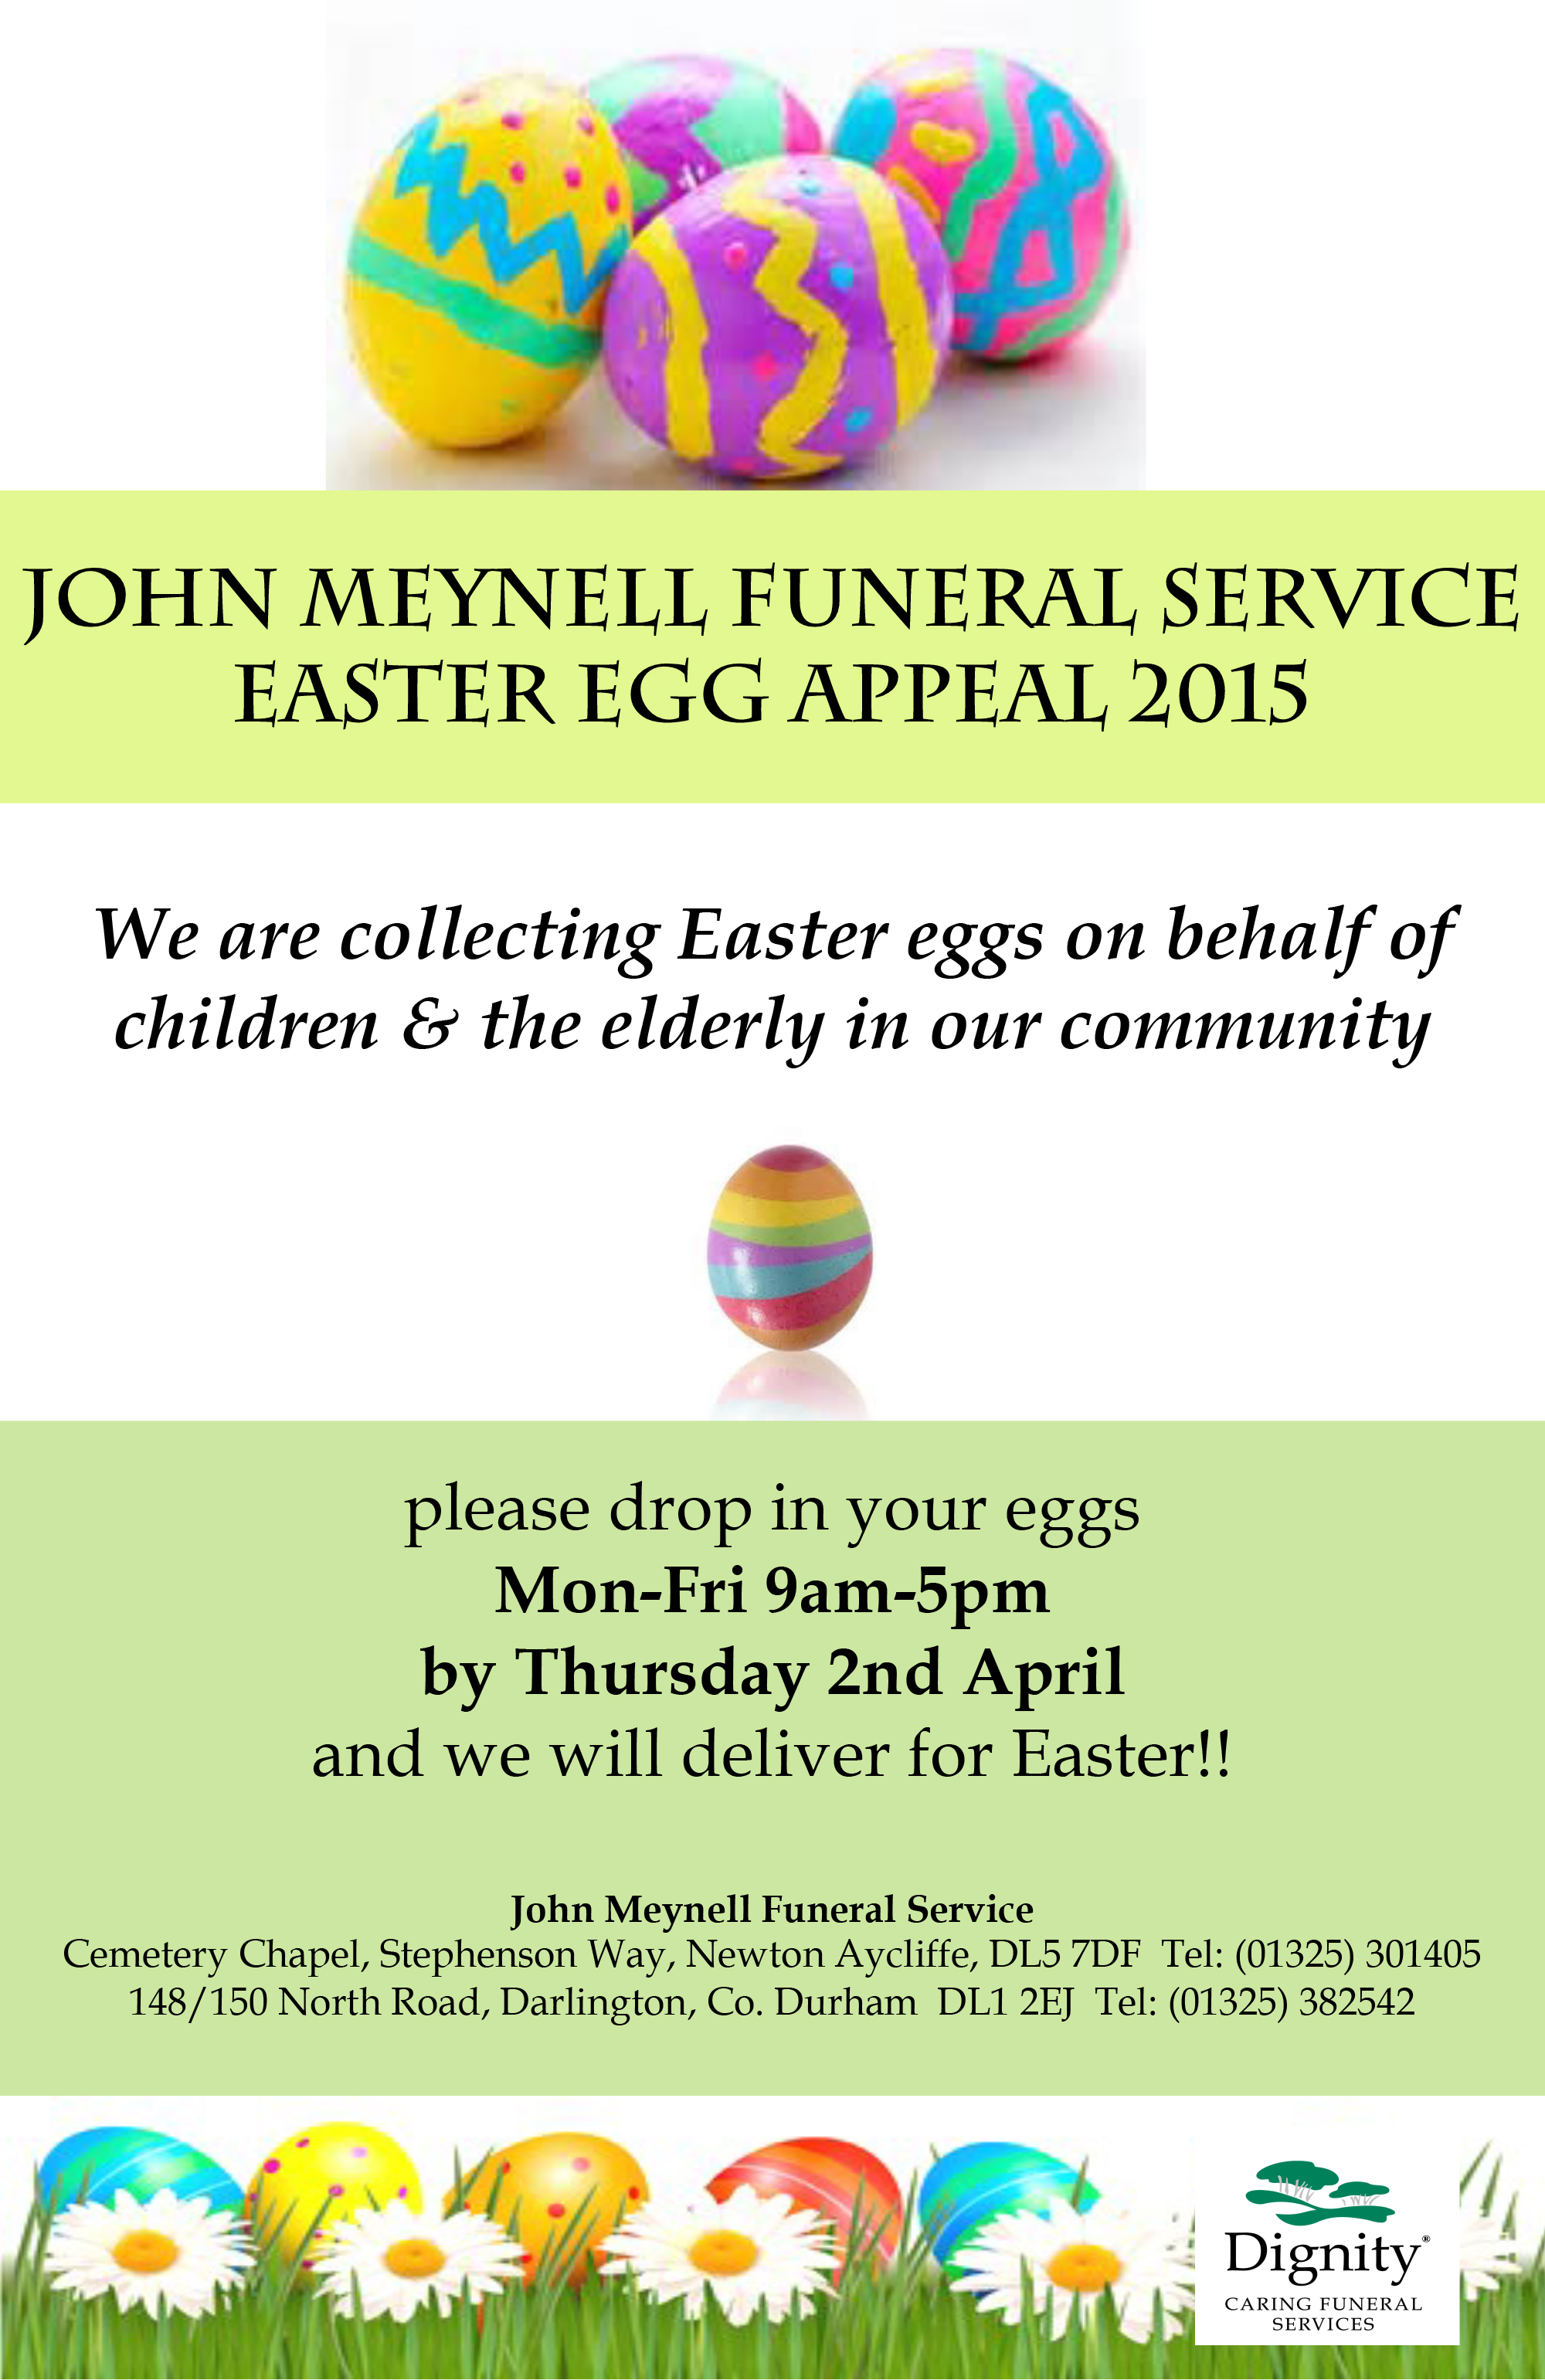 Local Funeral Director's Easter Egg Challenge